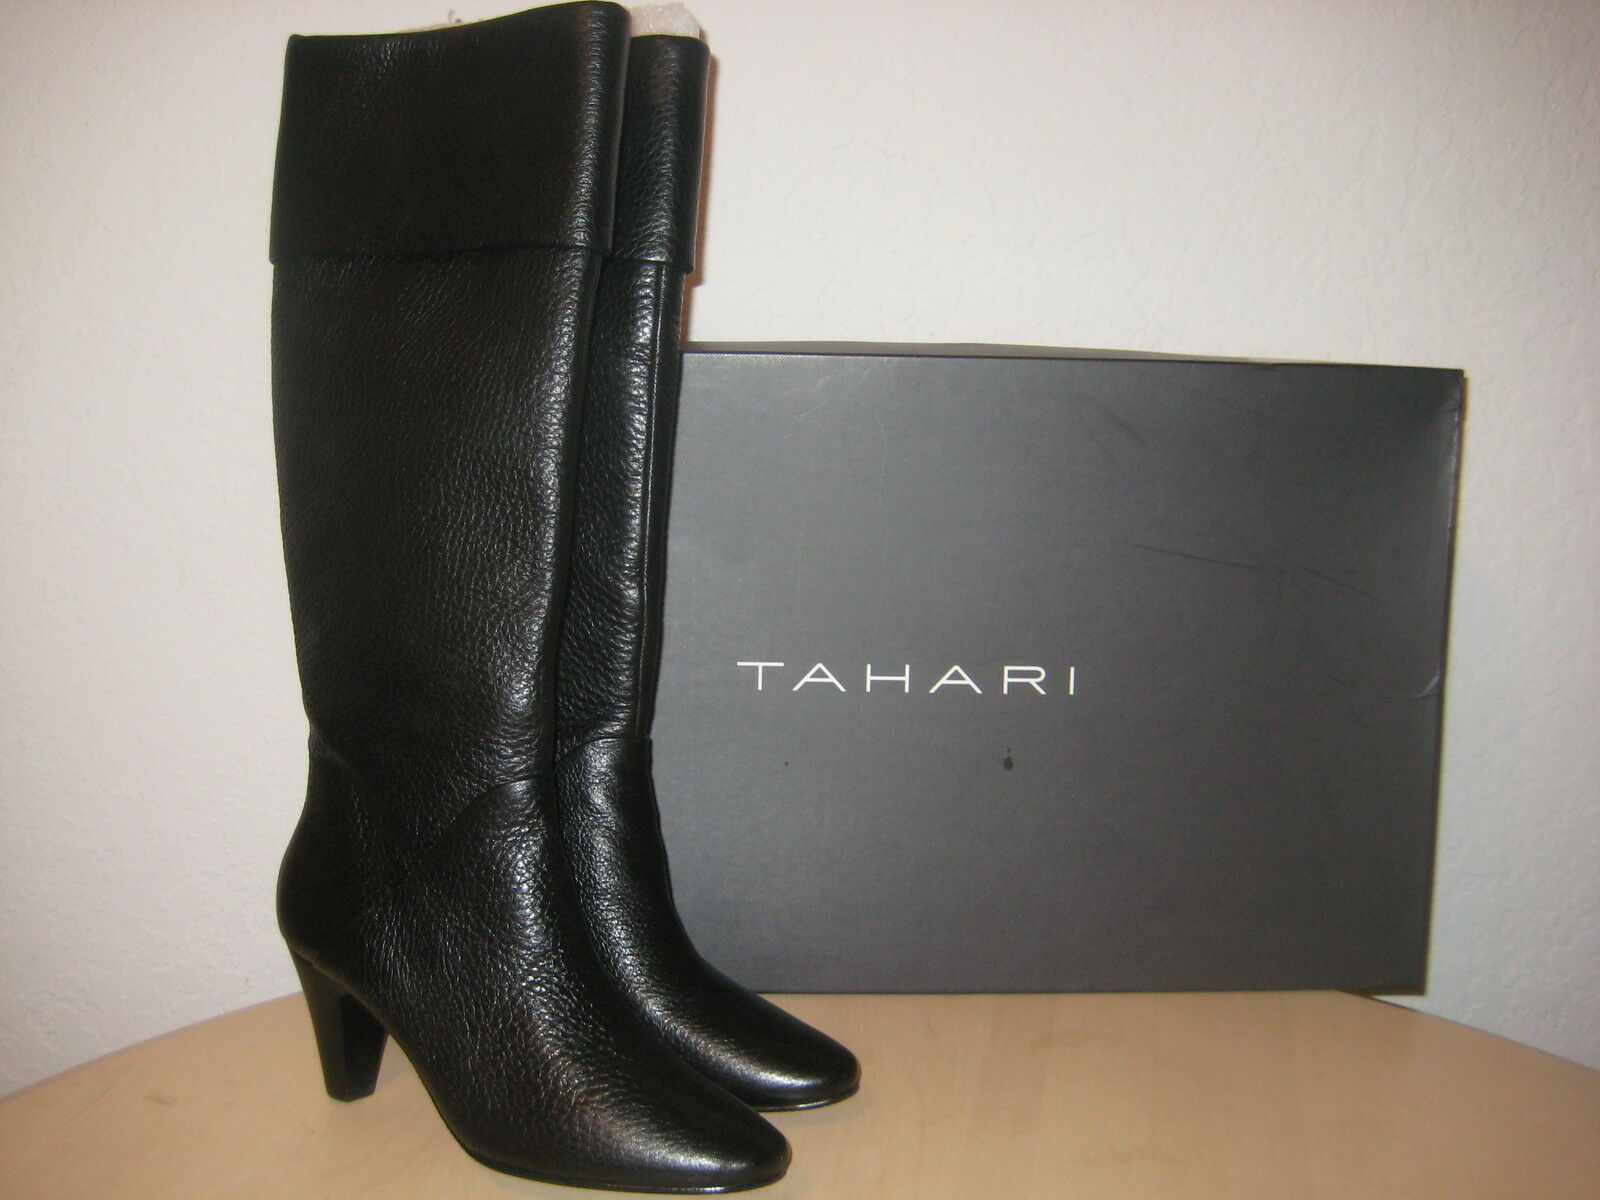 Tahari New Womens Gentry Black Leather Heel Boots Size 6.5 M shoes